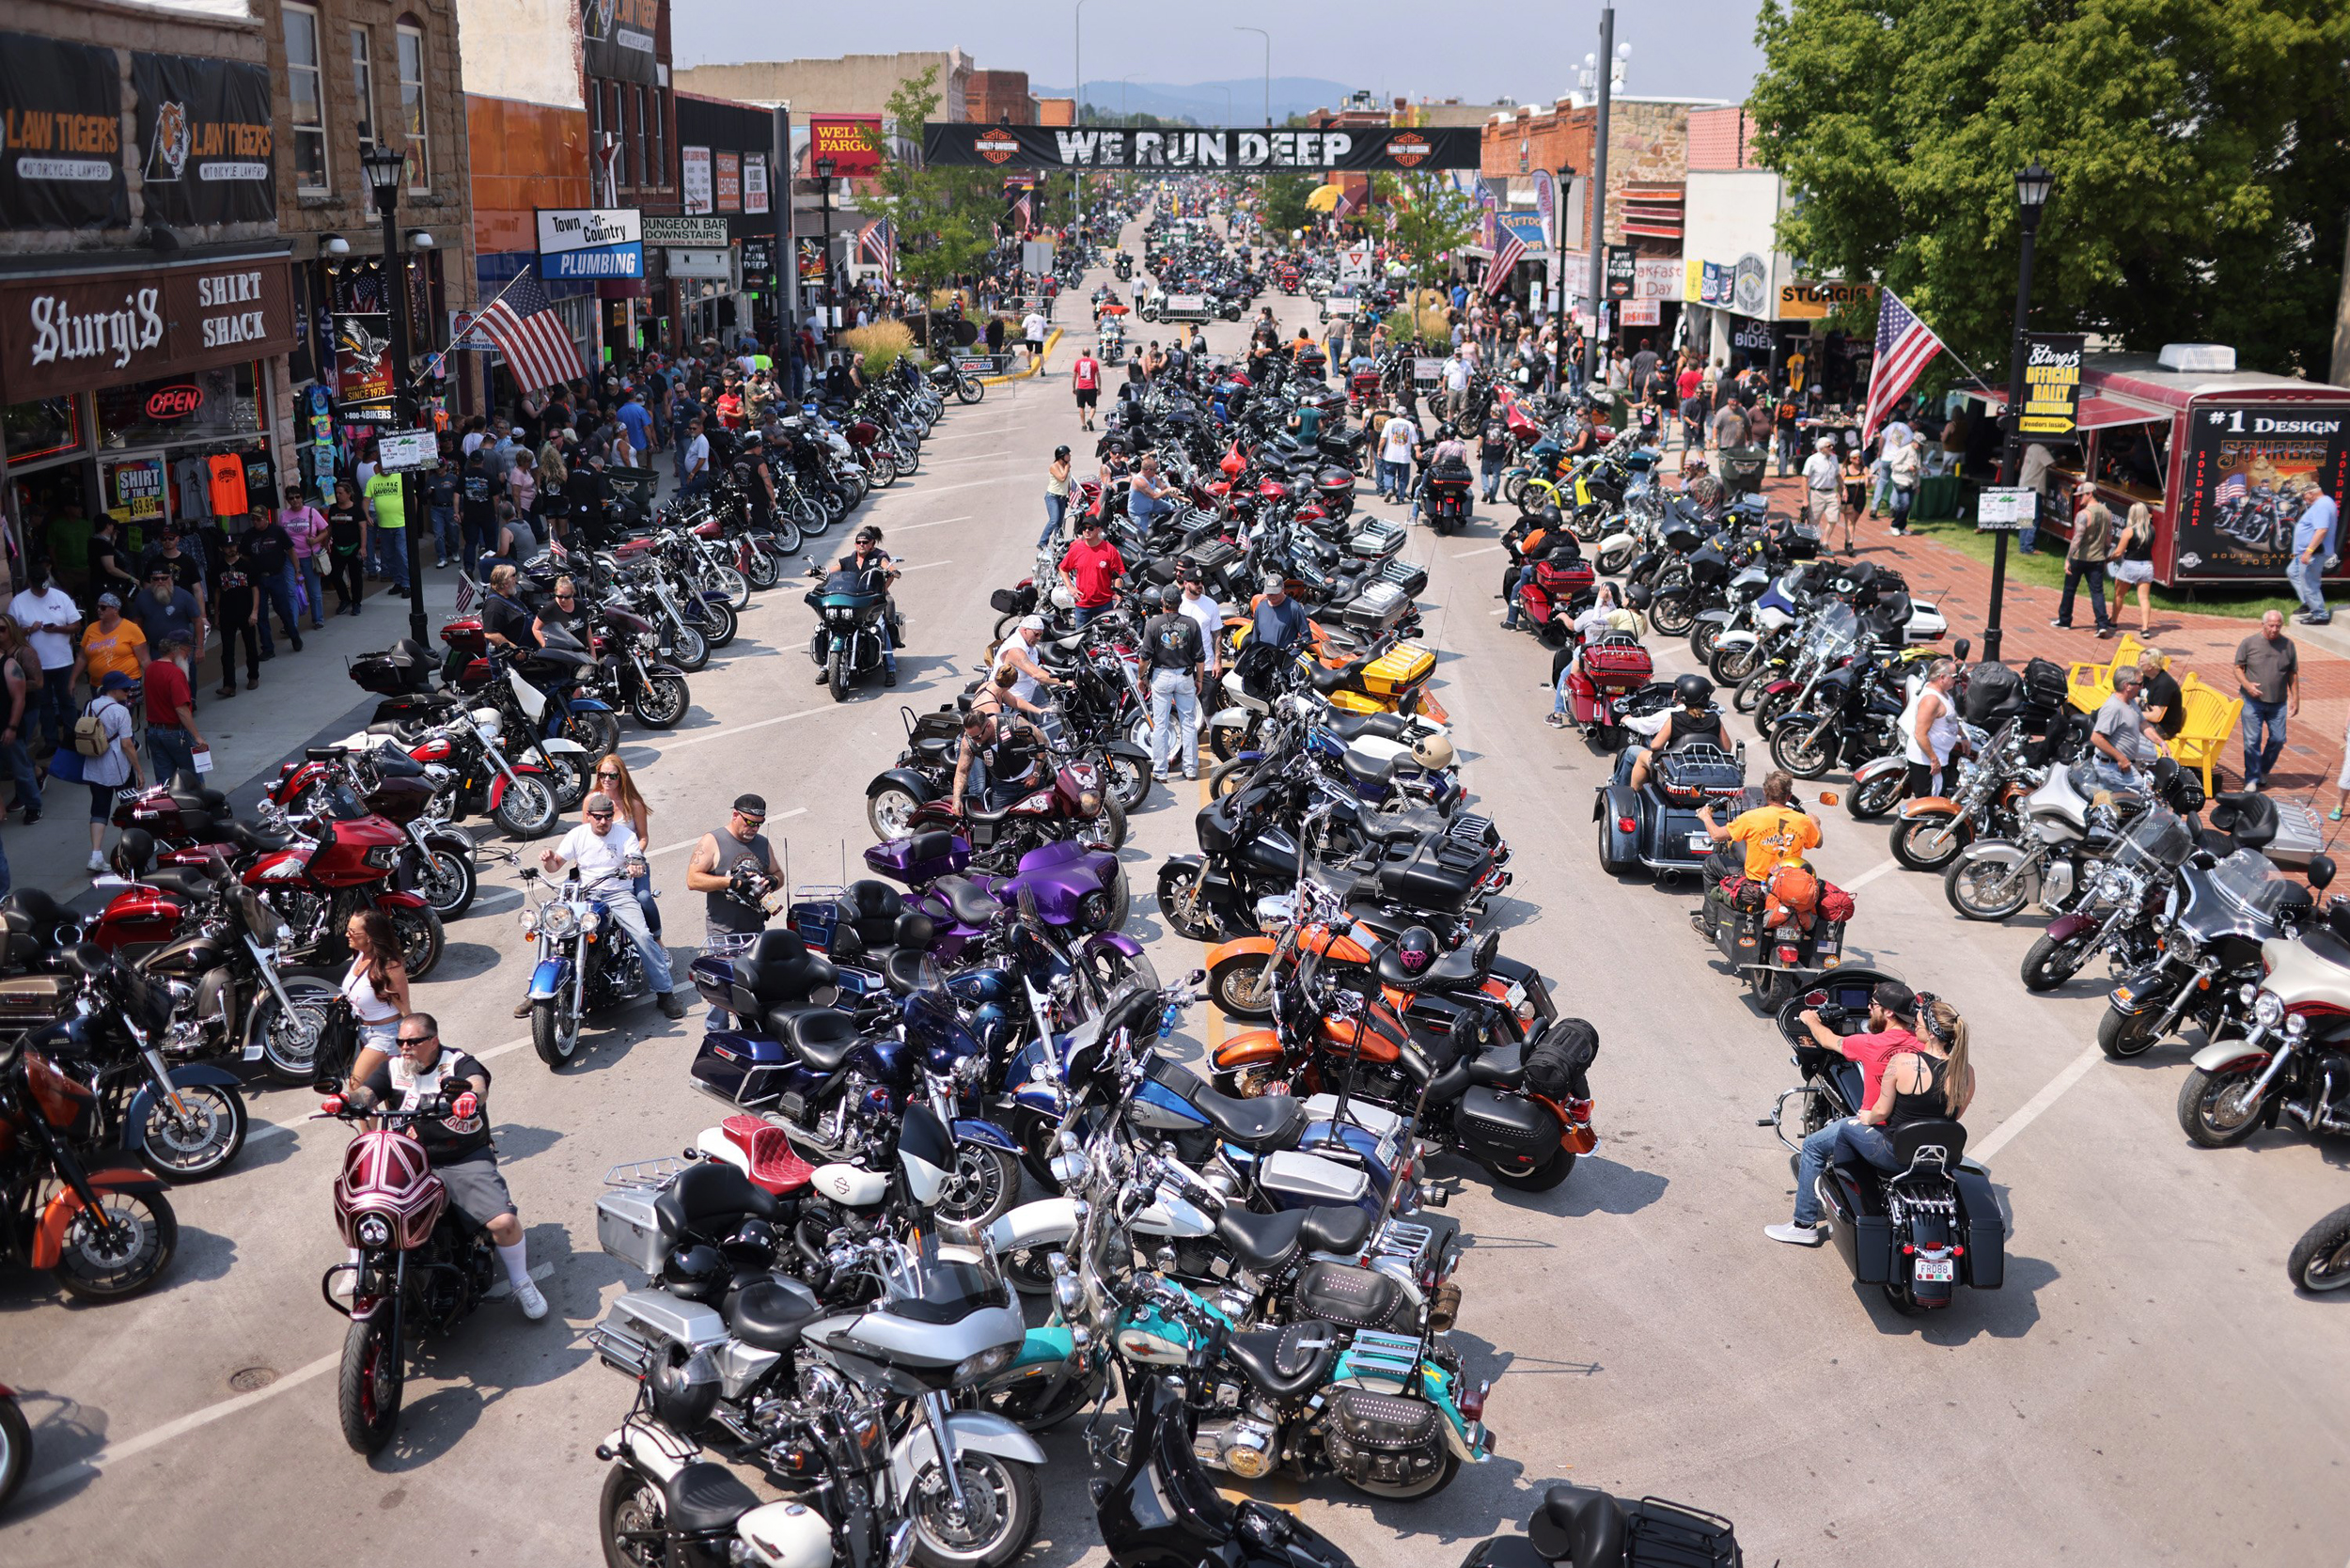 a group of people on a motorcycle in a parking lot